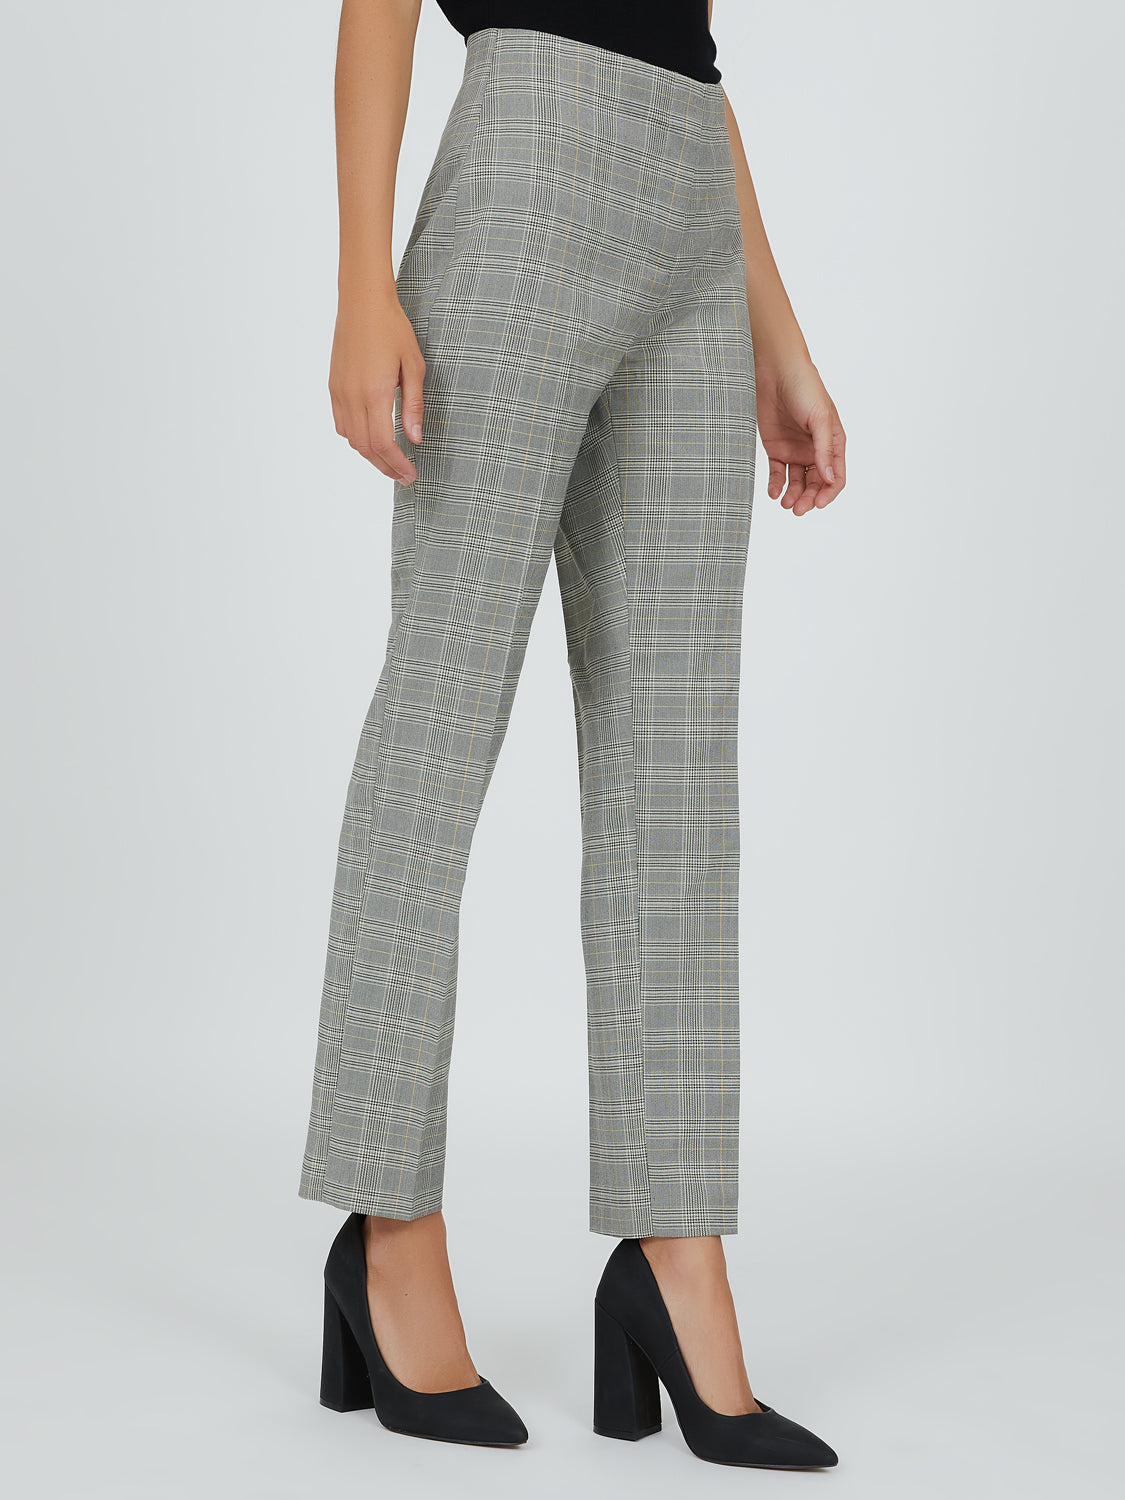 Trendy Cigarette Pant